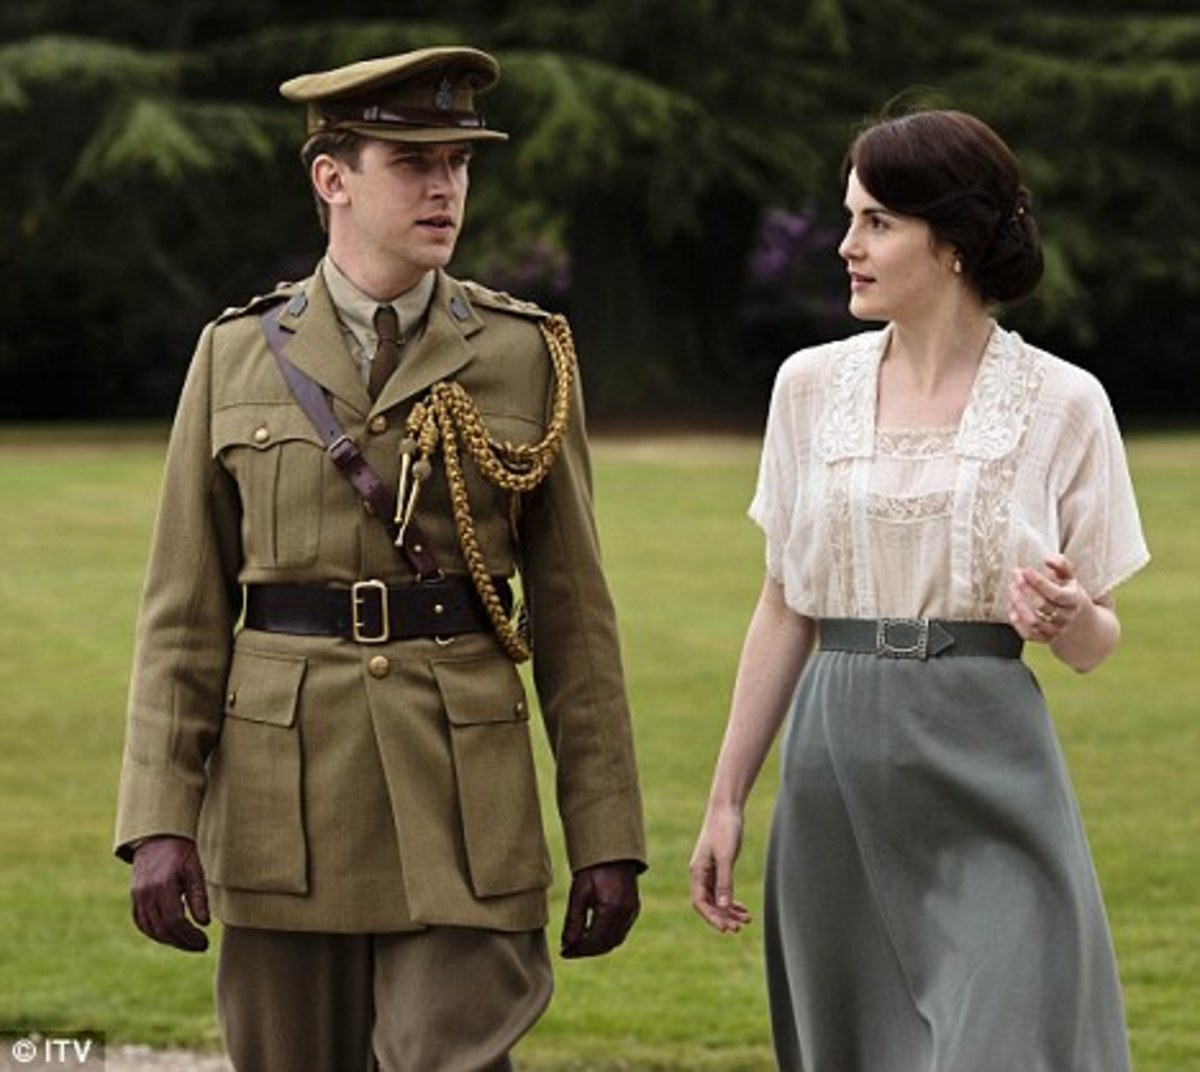 Mary Walking with her Beloved Matthew in the Downton Garden